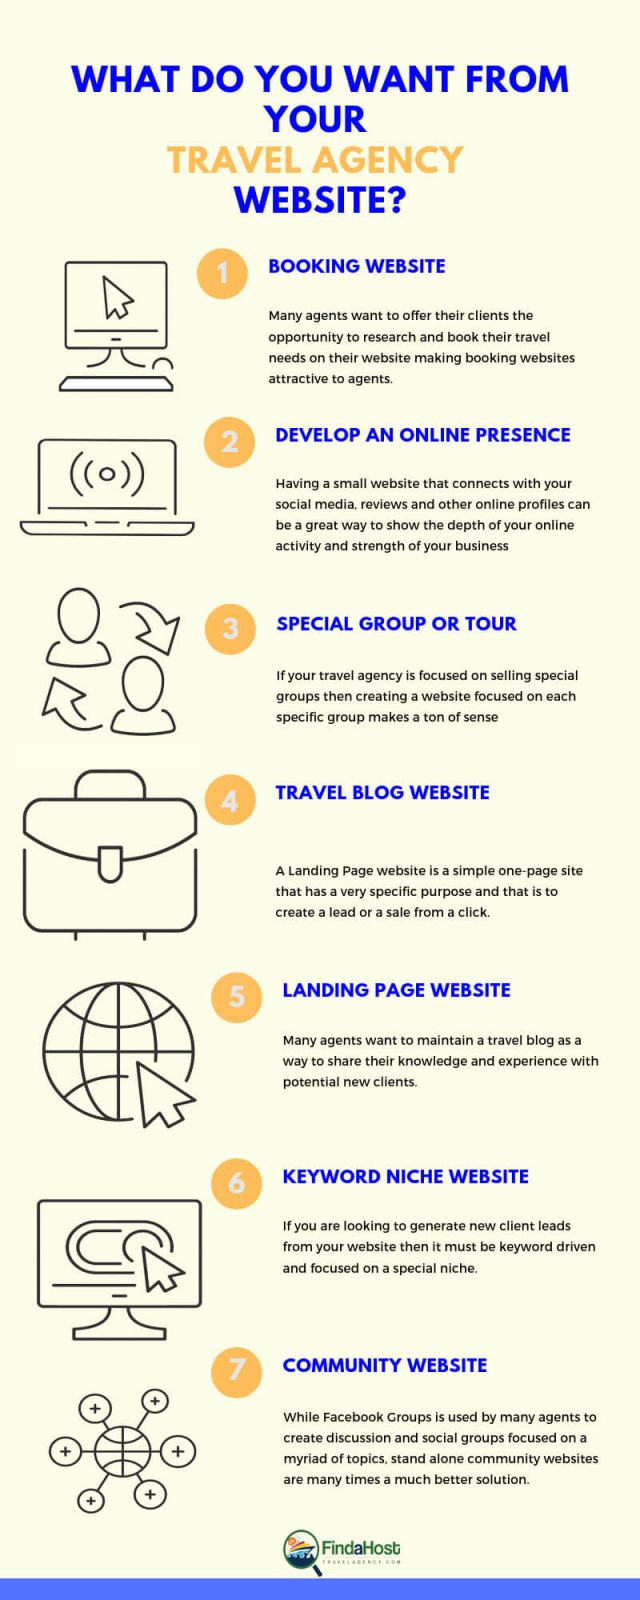 Travel Agent Information on Types of Travel Agency Websites